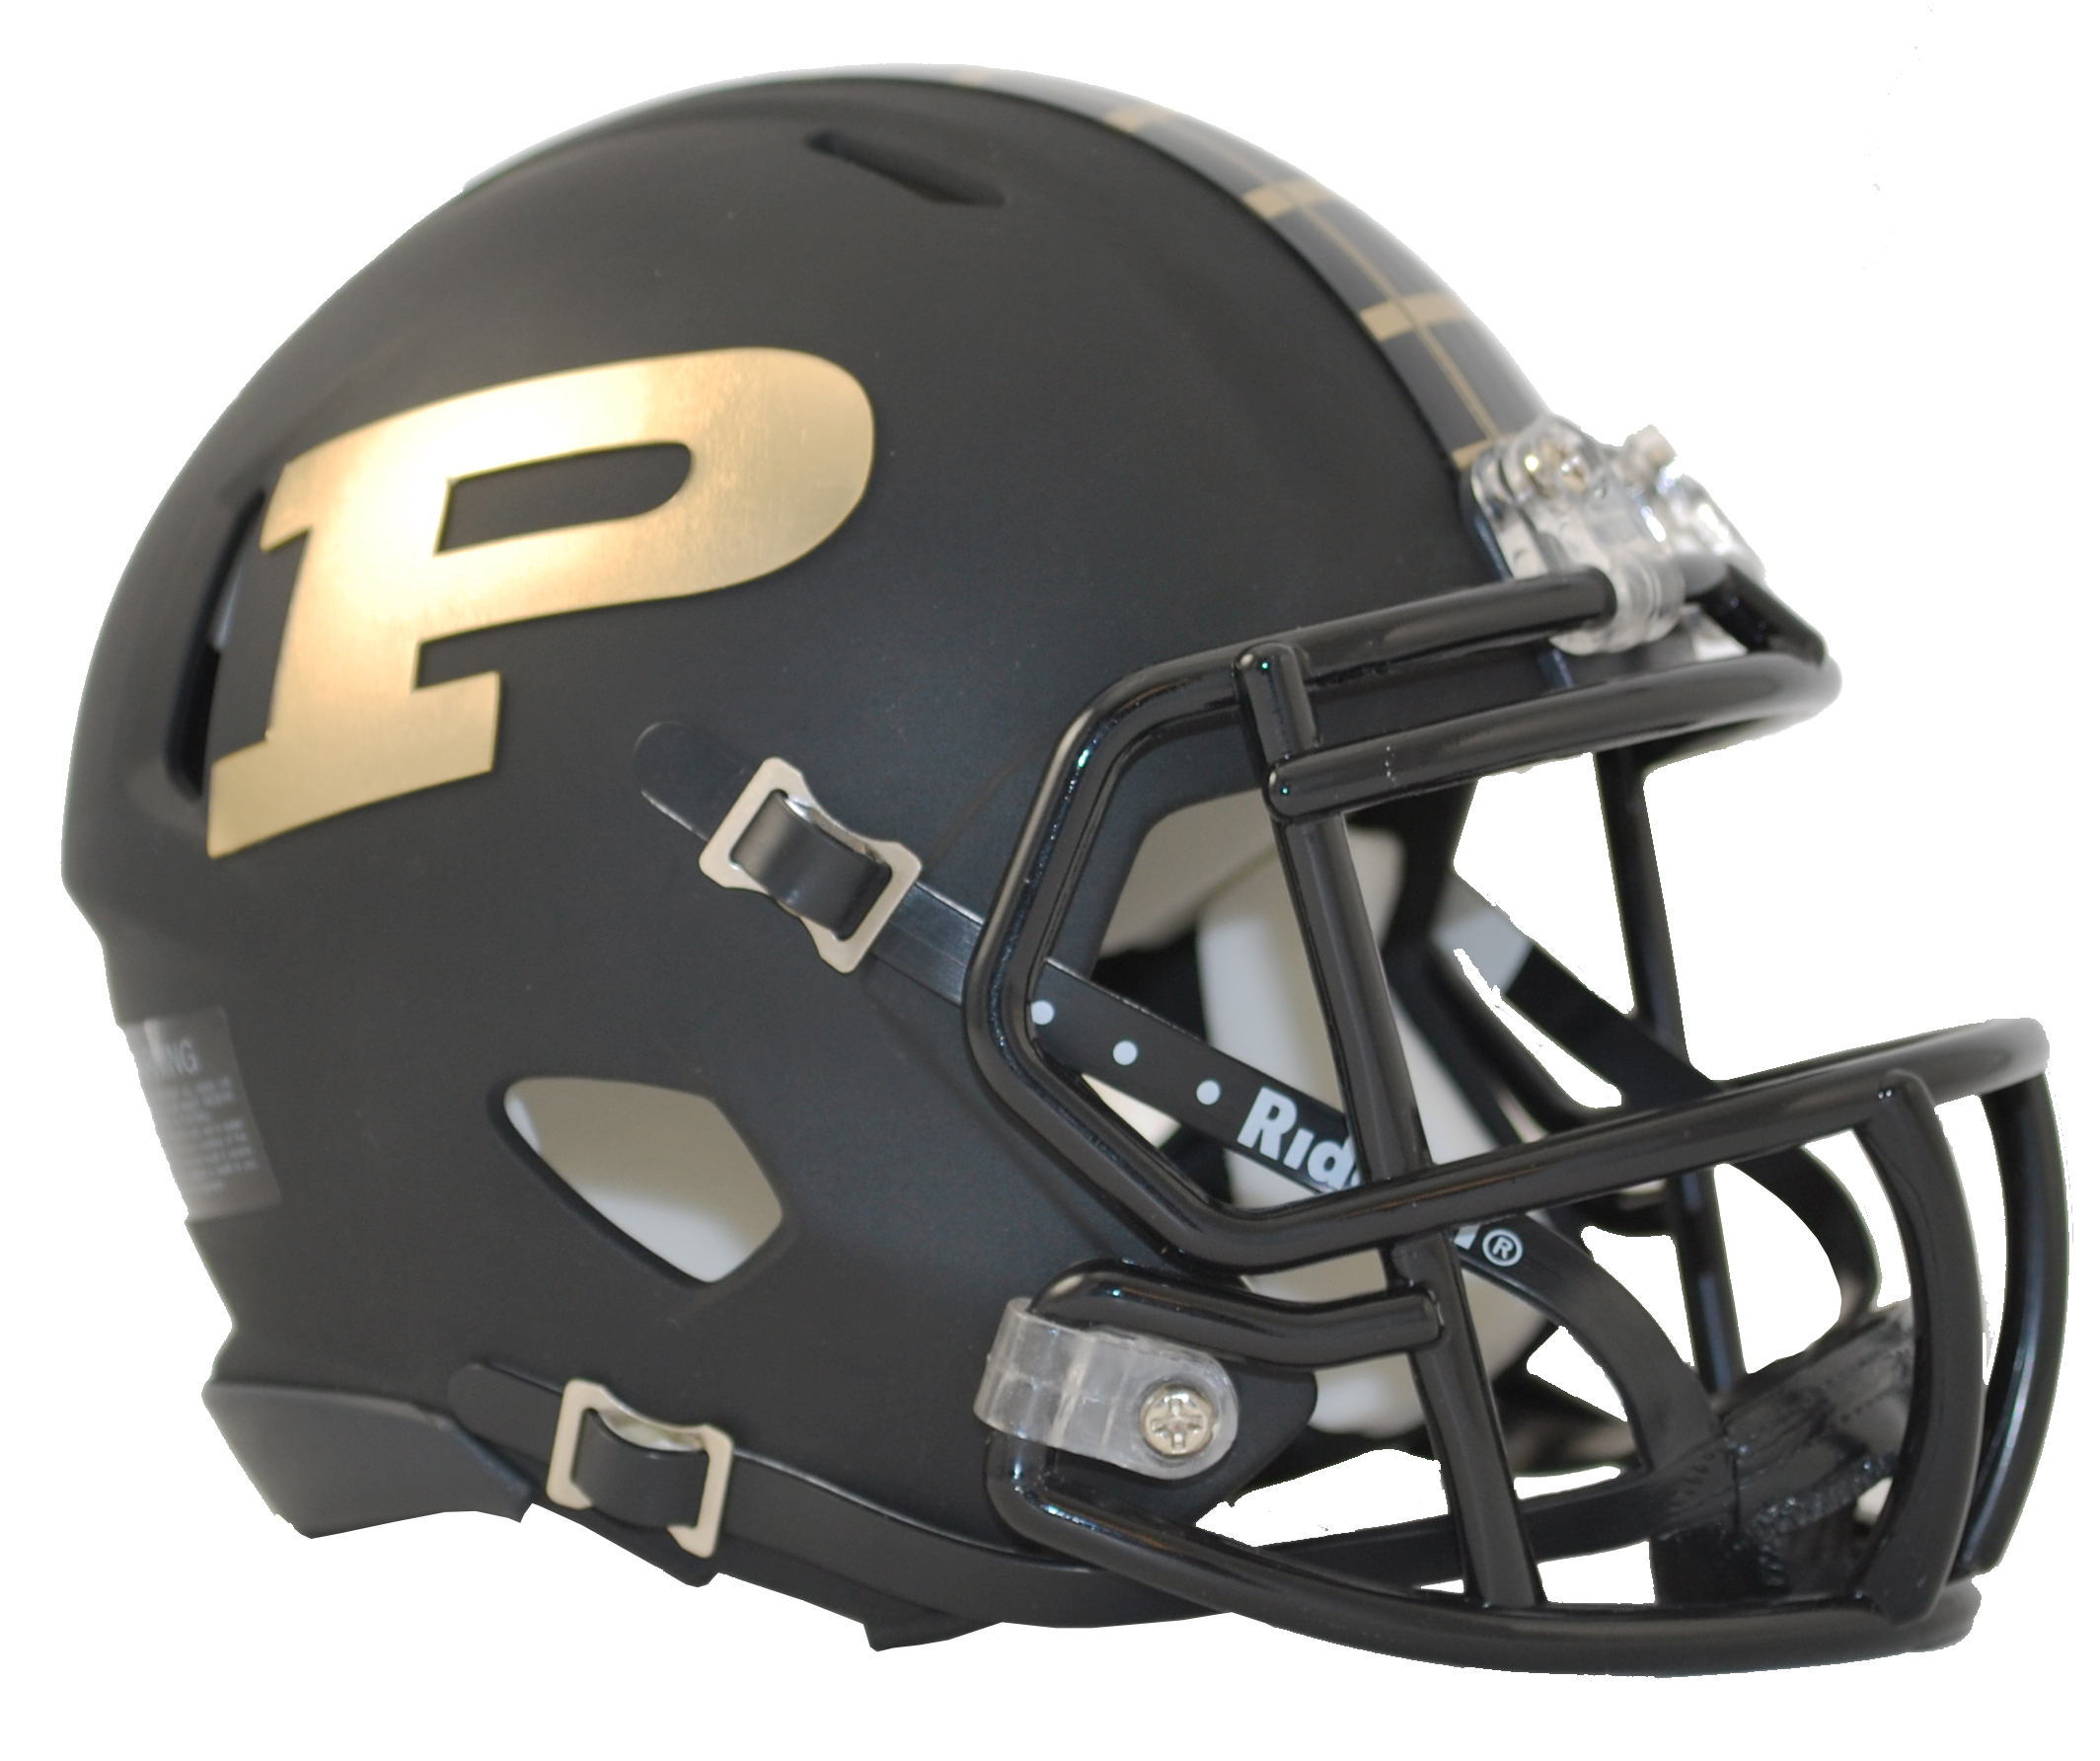 American Football Helmet Png Image Football Helmets Mini Footballs Black Helmet